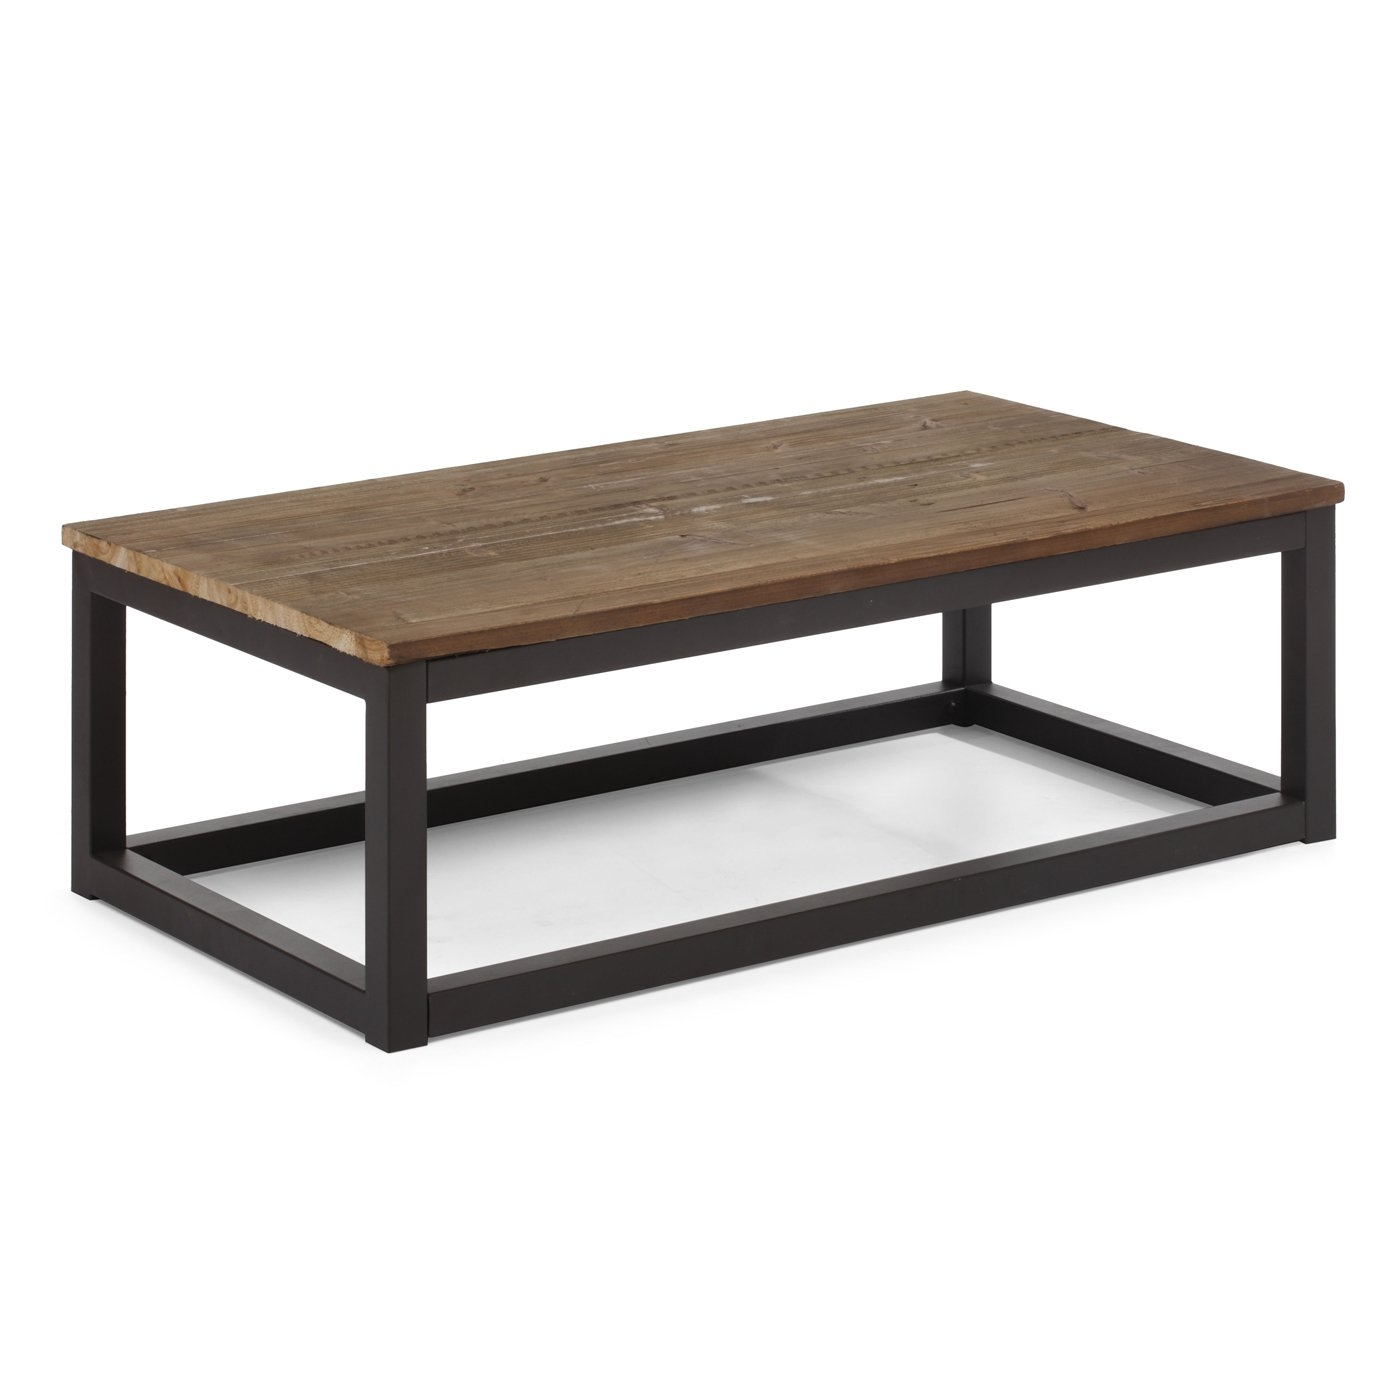 Zuo Modern 98123 Civic Center Long Coffee Table | Lowe's Canada inside Element Coffee Tables (Image 30 of 30)